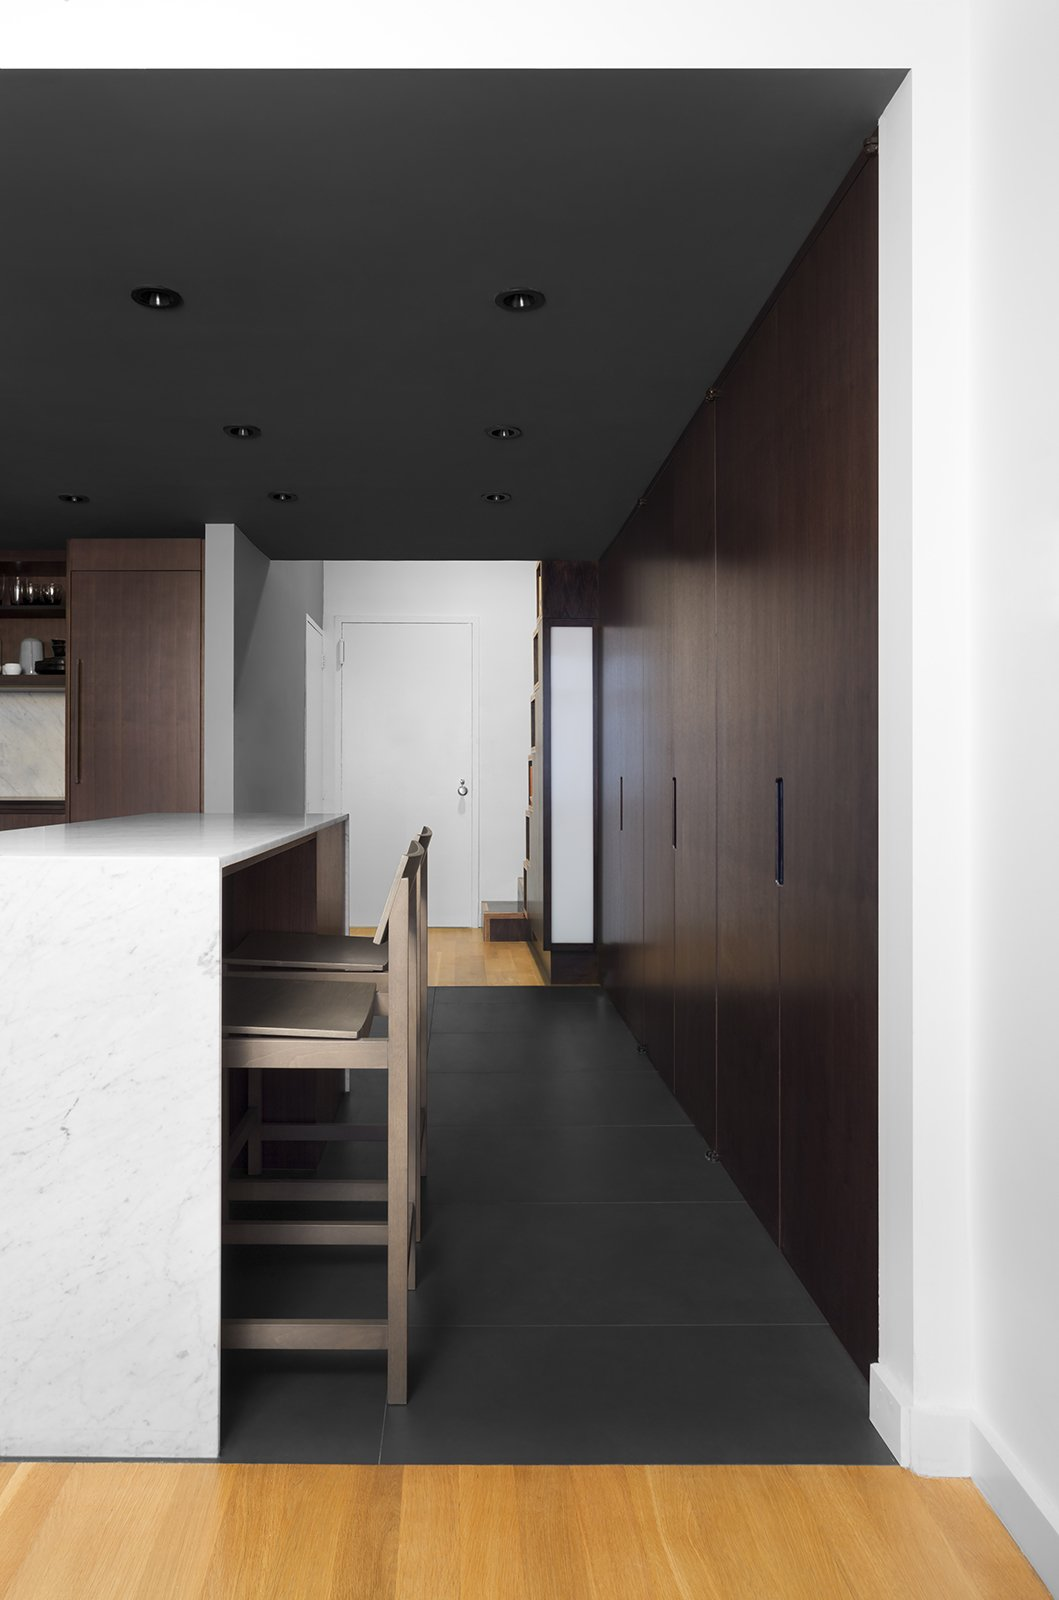 "Zames reconfigured the apartment to improve circulation and open some of the confined rooms. What was formerly a hallway is now integrated with the kitchen. A bank of floor-to-ceiling cabinets offers storage and an island covered in carrara marble offers space for working or dining. ""We embraced dark colors in the kitchen to keep a contrast with the bright white of the surrounding living areas,"" Zames says of the constrasting finishes. The barstools are from CB2."